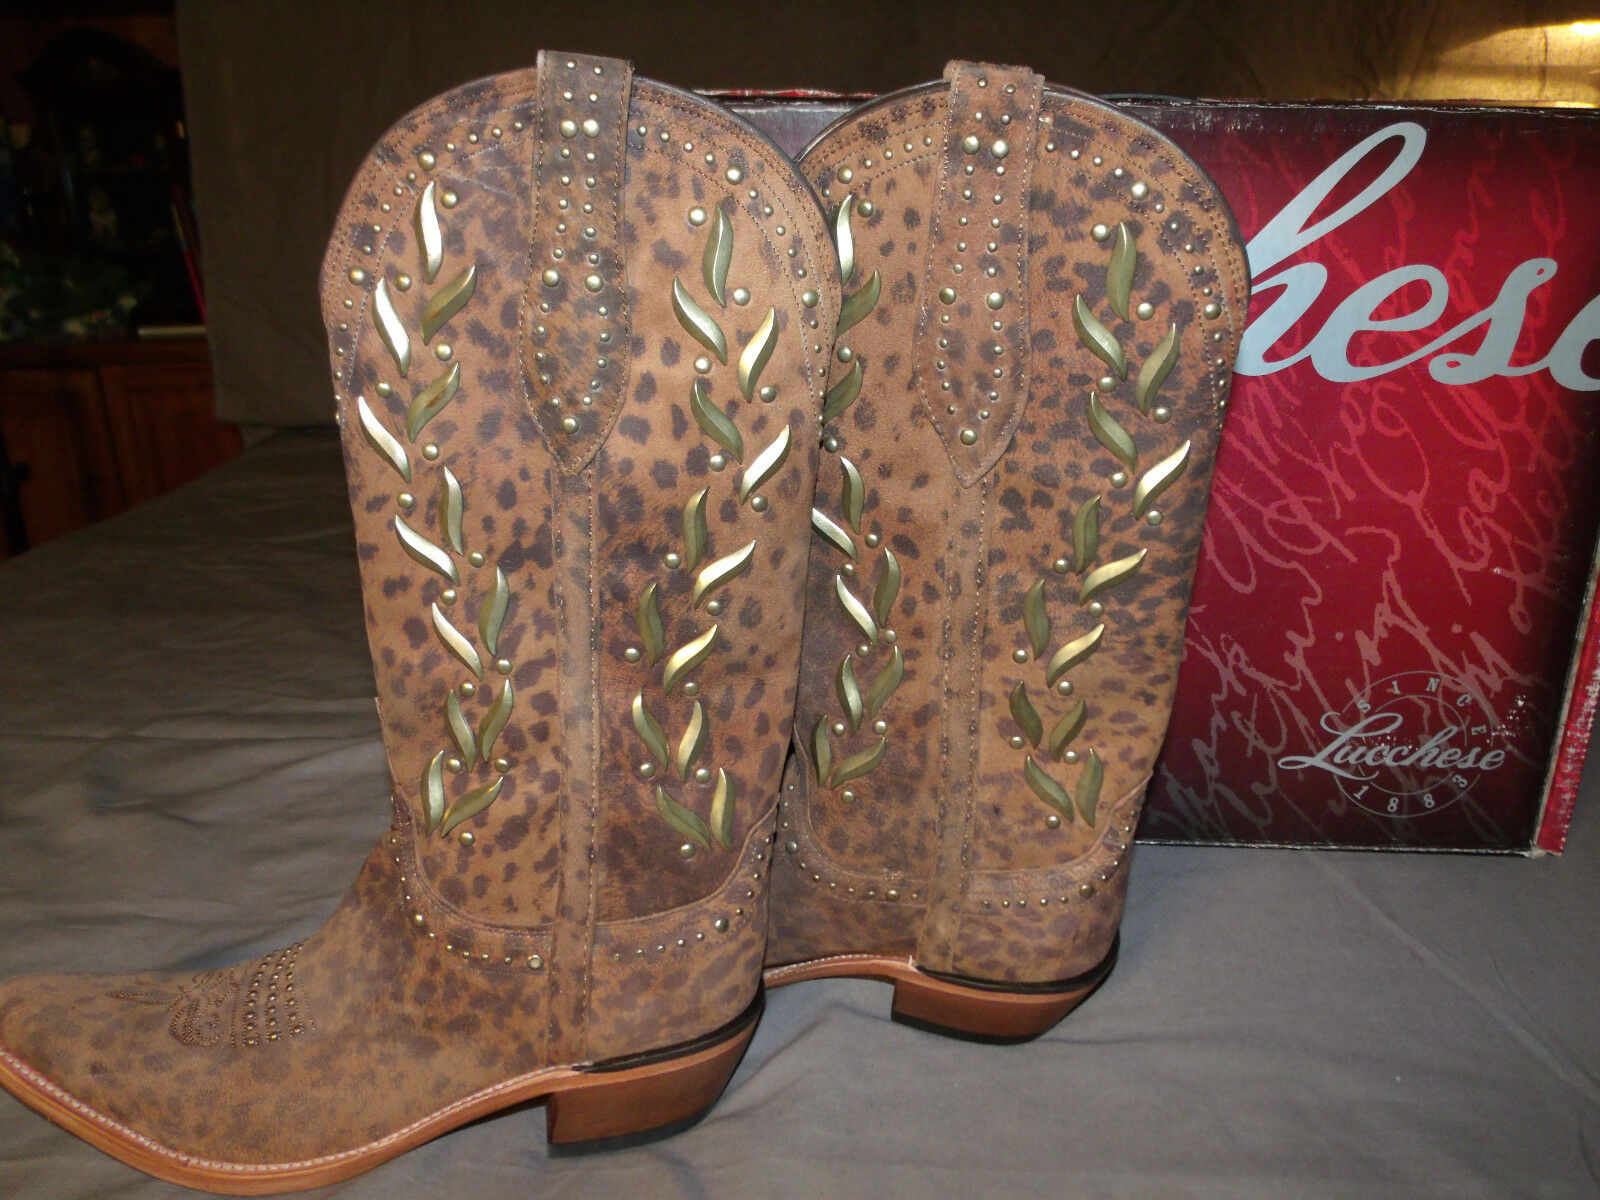 LUCCHESE M4622.S54 Womens Sexy CAMEL CHEETAH Studded Studded Studded Boots Size 7.5B 6f5fbb